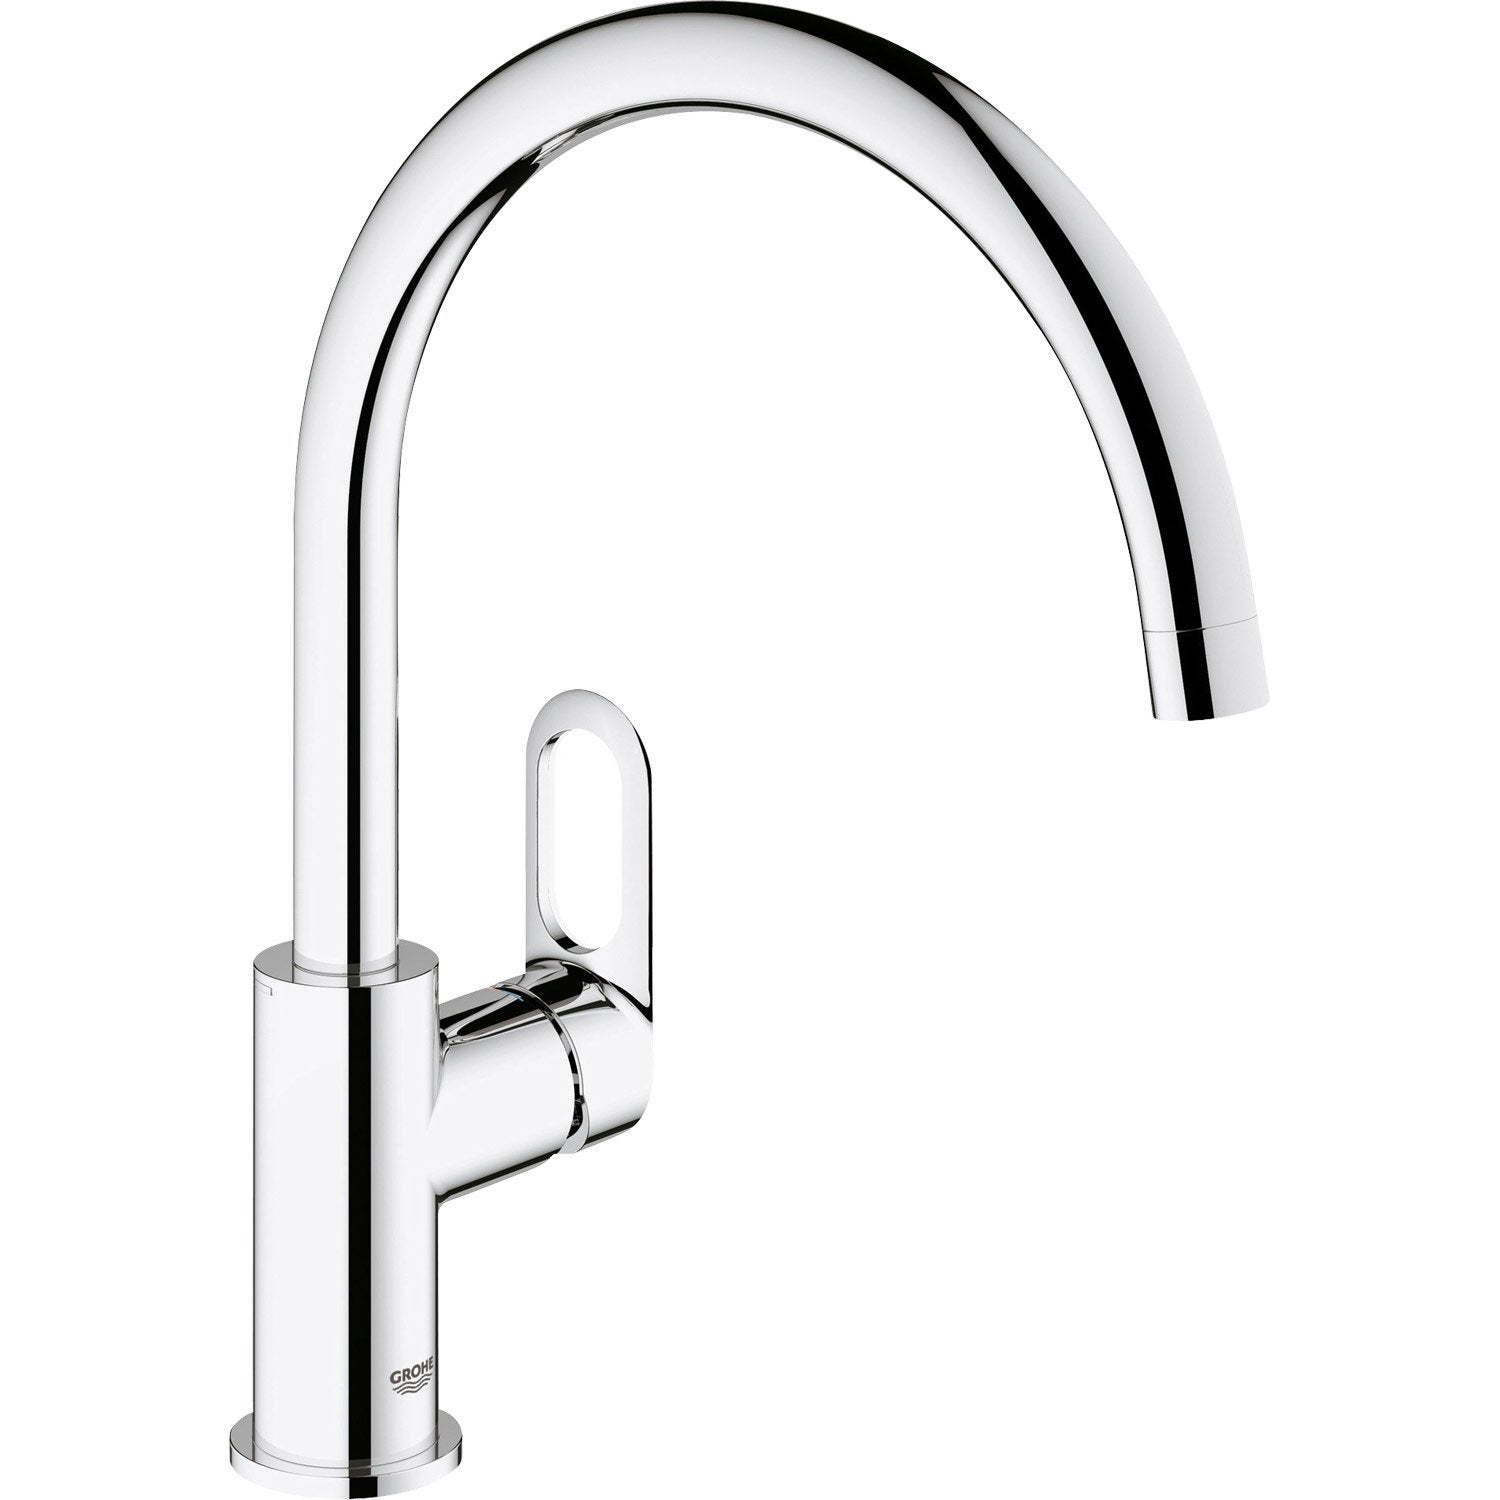 Mitigeur De Cuisine Chrome Grohe Start Loop Leroy Merlin